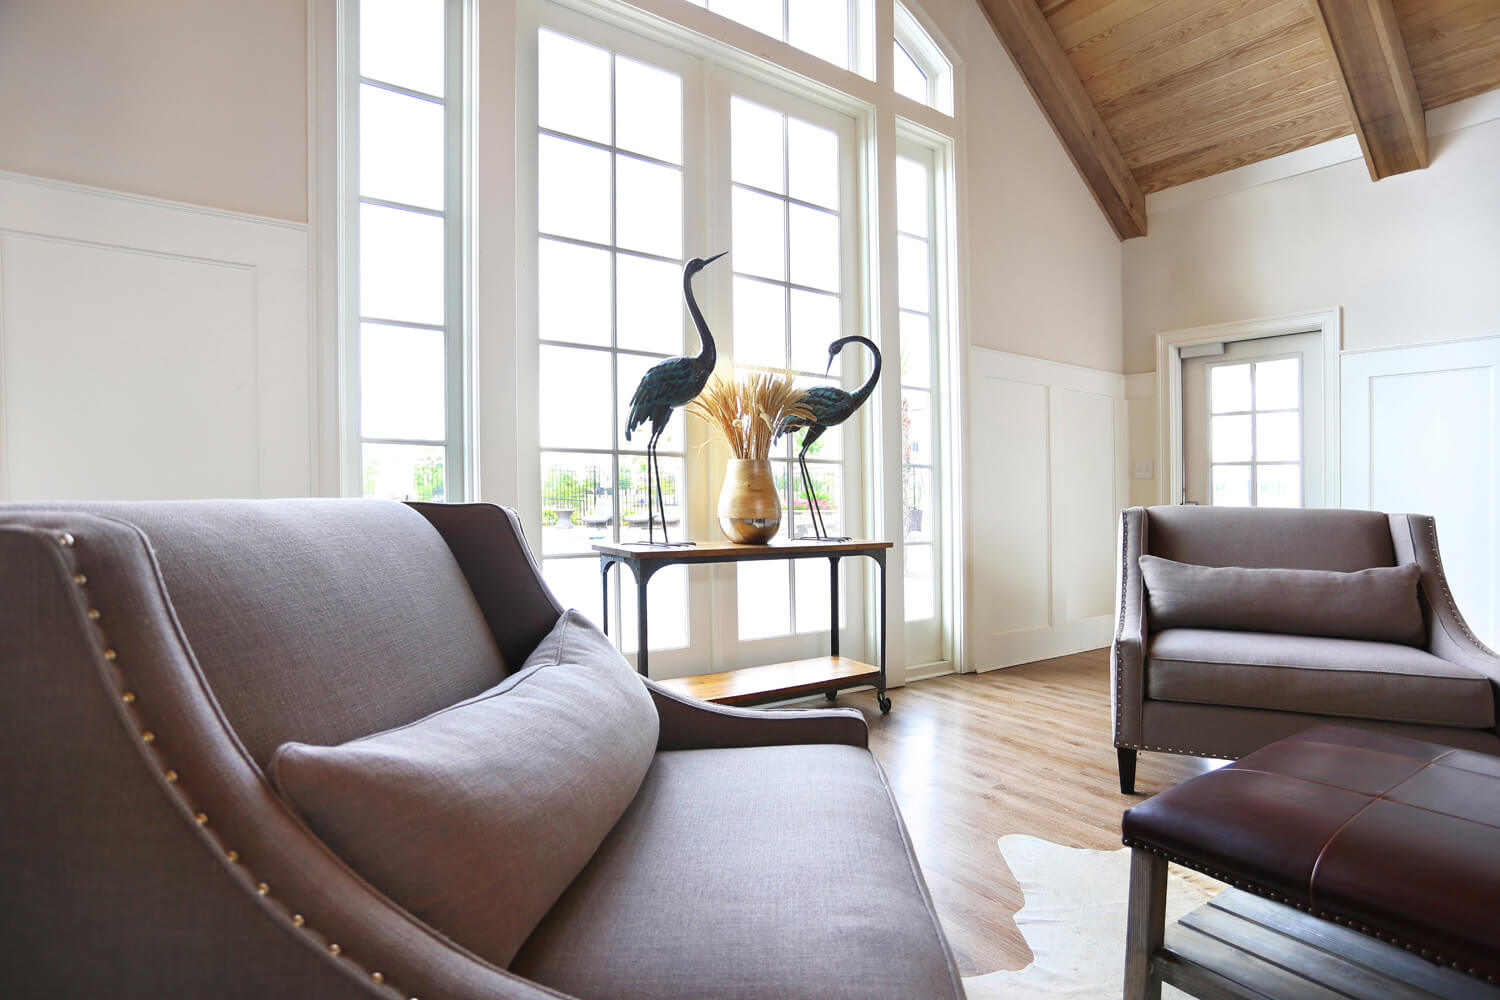 The Morgan Apartments Clubhouse Designed by Foshee Architecture - Window Seating Area